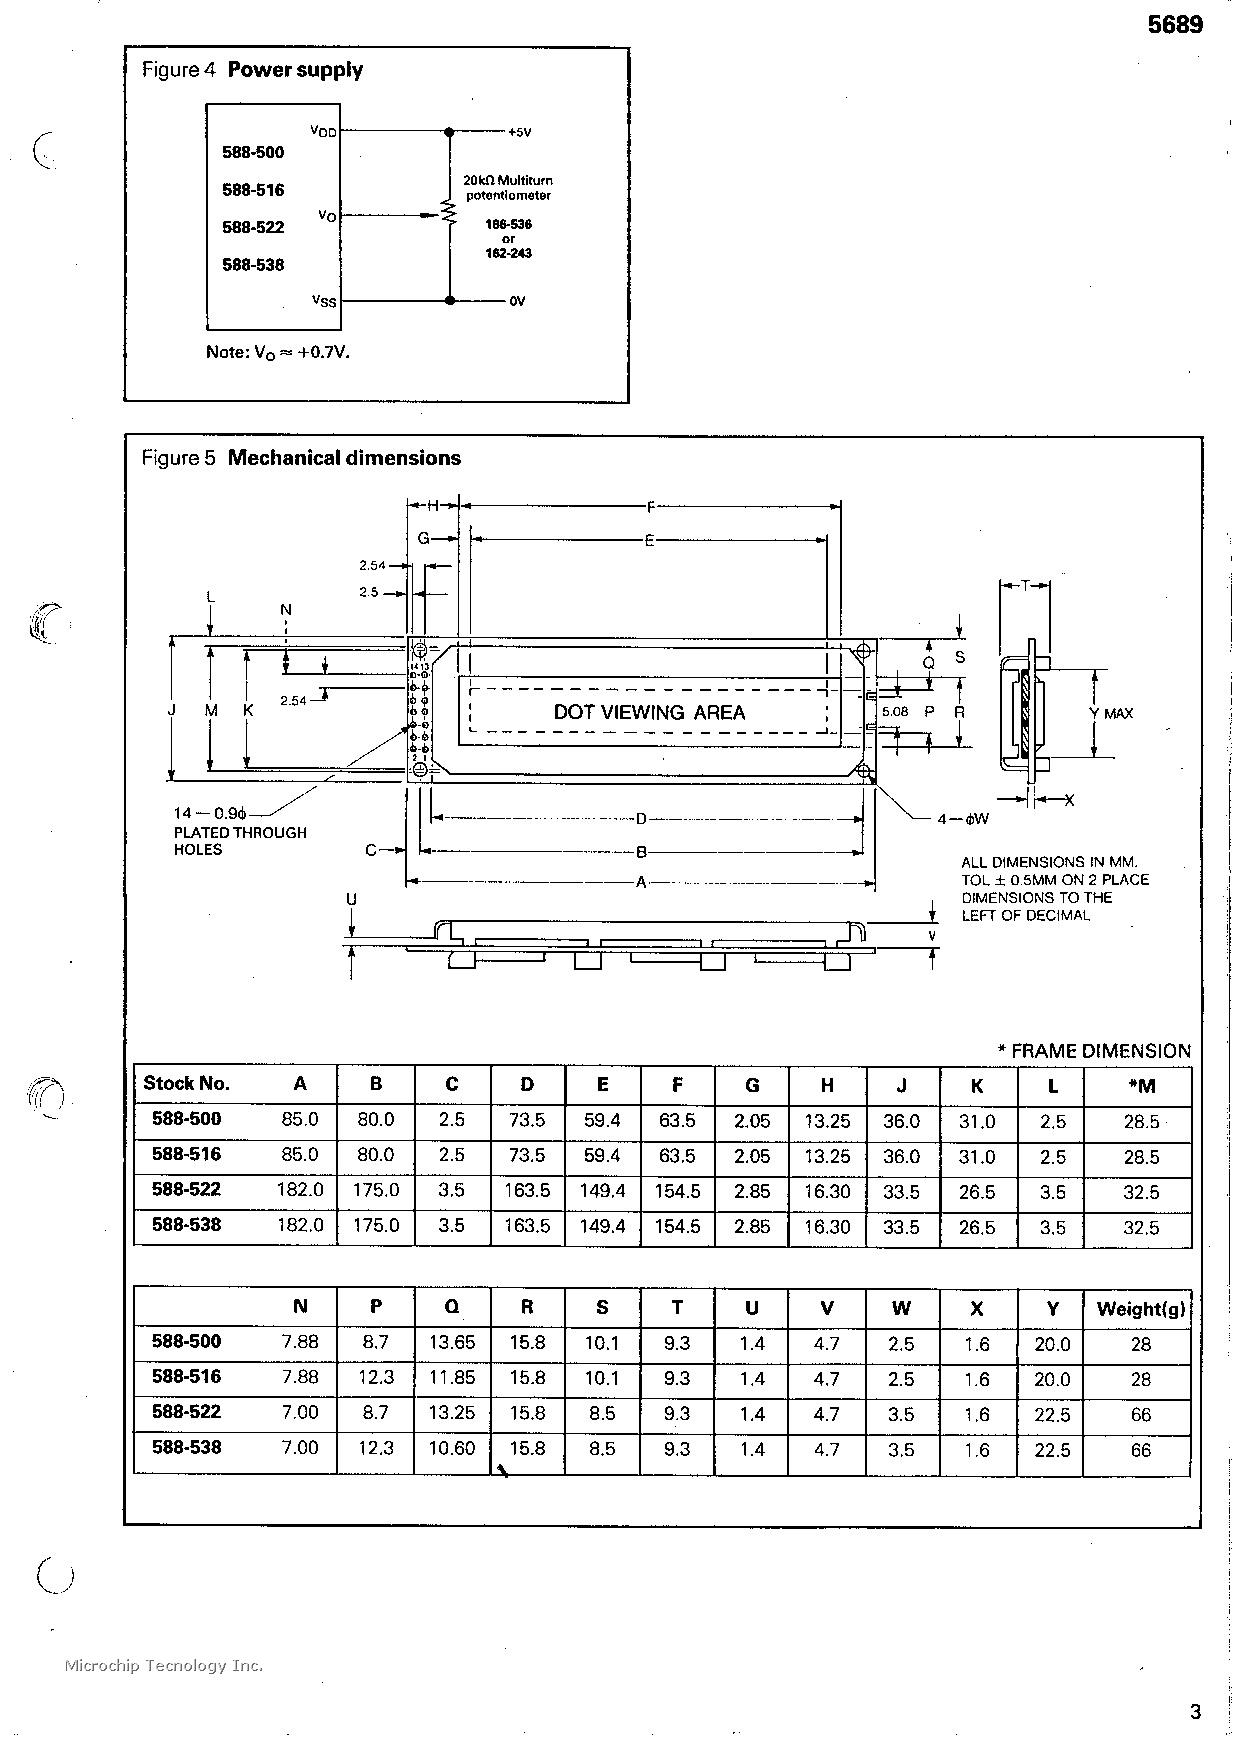 Unable To Initialize 16x2 Lcd 4 Bit Interface Microchip Module In 4bit Mode Circuit Diagram Page 3 Shows Connection Of Supply